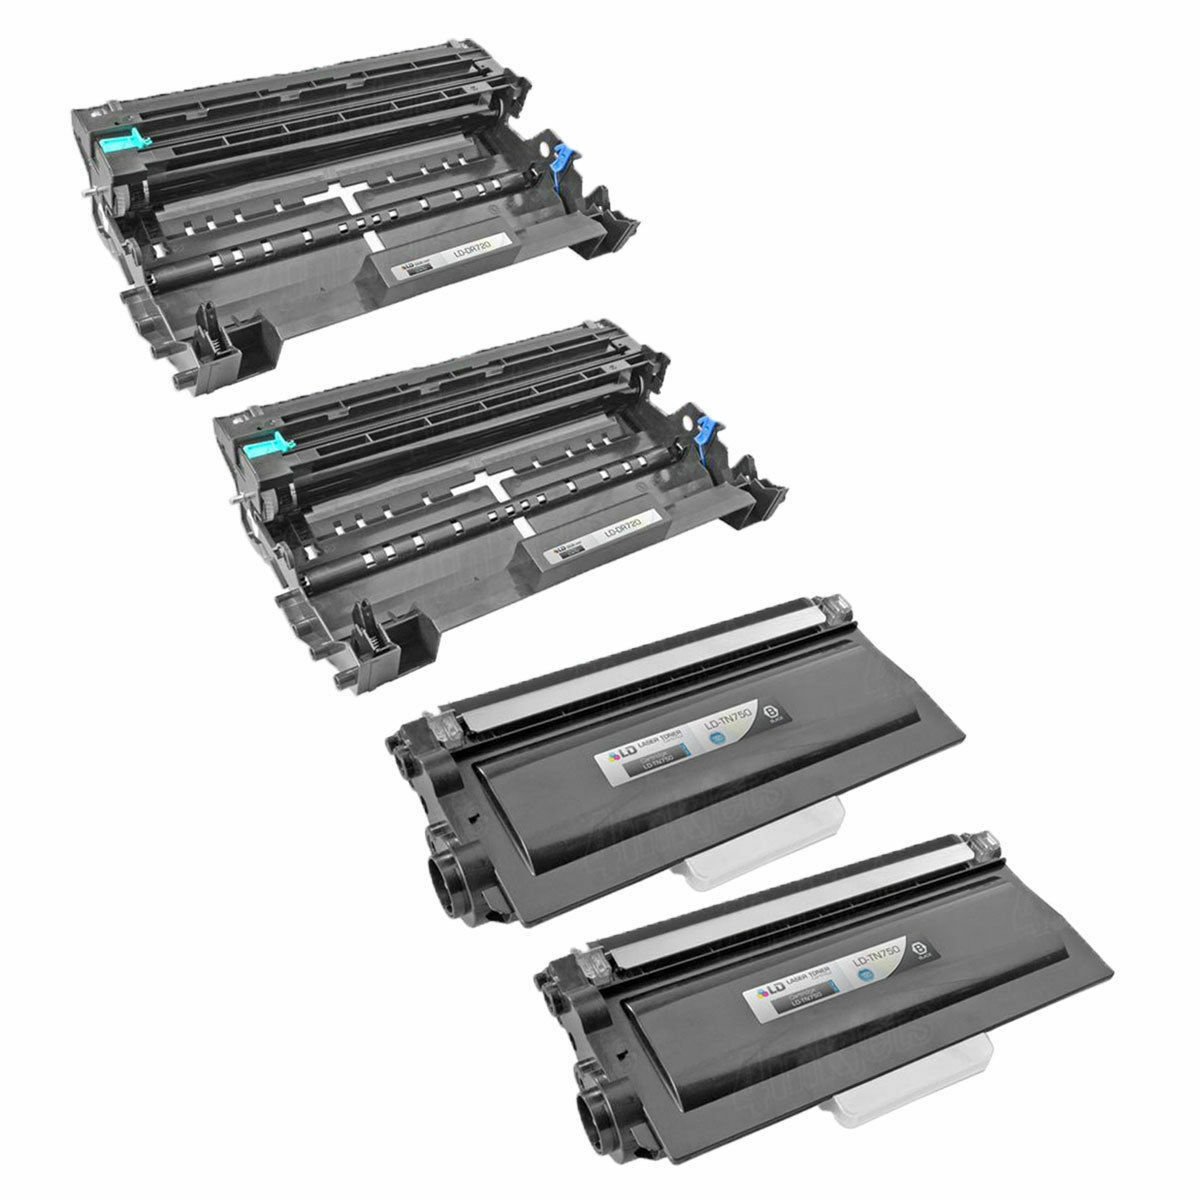 2 Tn750 & 2 Dr720 Combo Toner & Drum For Brother Hl5470dw...